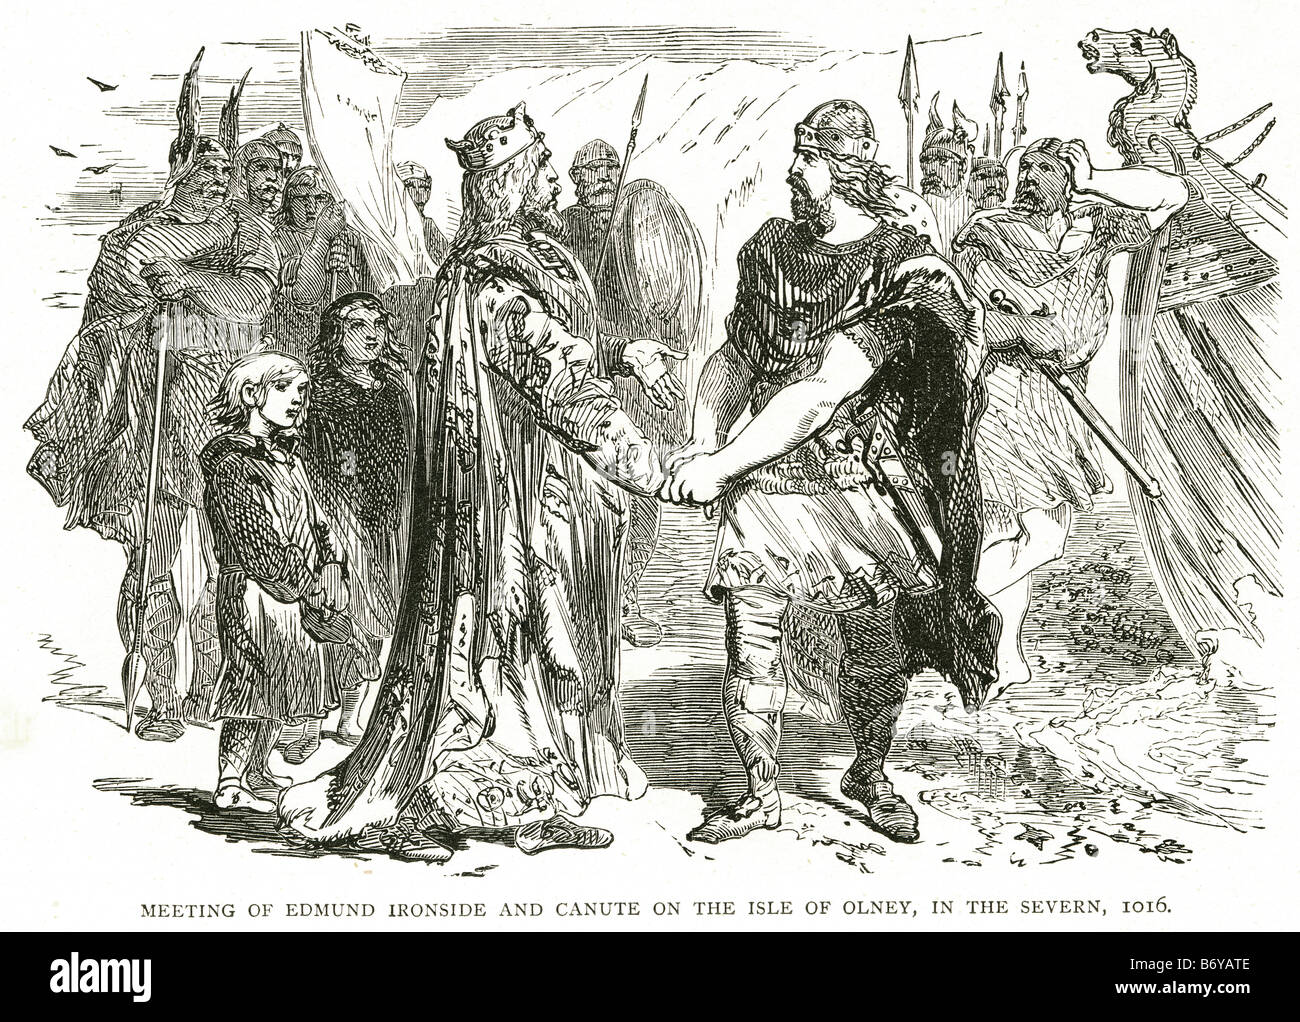 meeting of edmund ironside and King Canute on the isle of olney in the severn 1016 Danish invasion - Stock Image